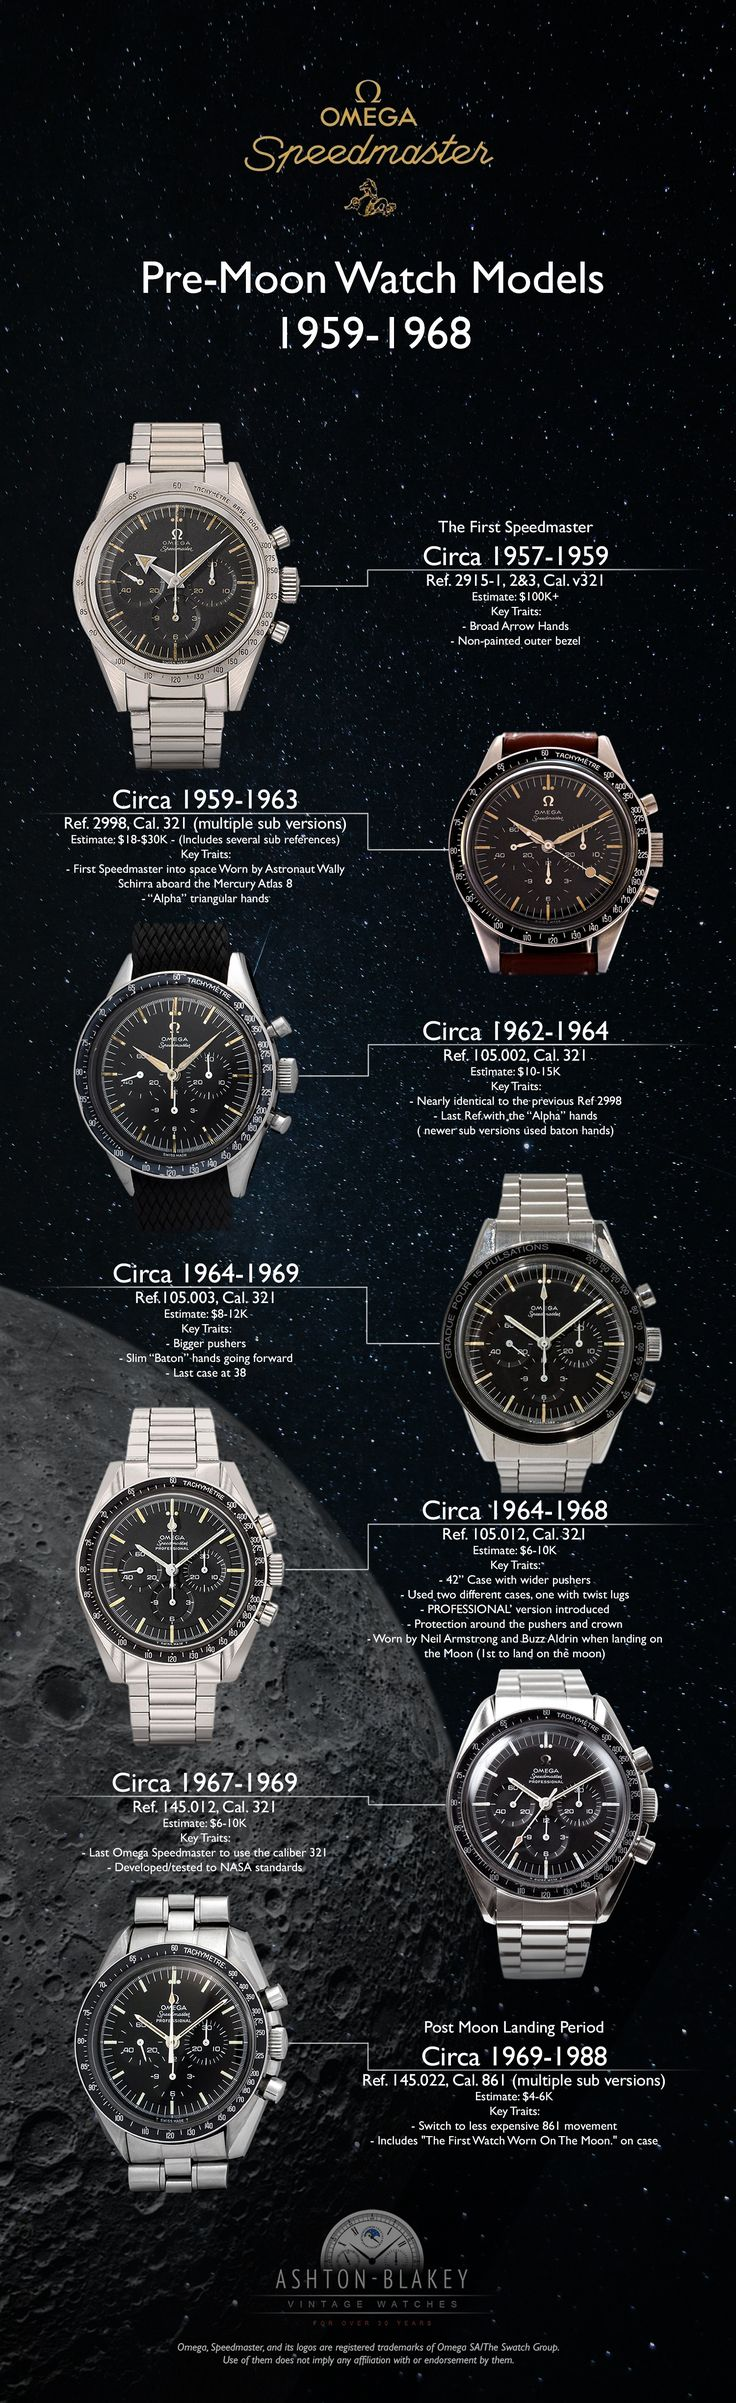 "Omega Speedmaster Pre-Moon Watch History & Models/Reference Guide - The complete evolution of the iconic ""Moon"" chronograph used by NASA incl. Reference 2915, 2998, 105.002, 105.003, 105.012, 145.022 With Lemania 321, and 861 #vintagewatches #omegawatches"